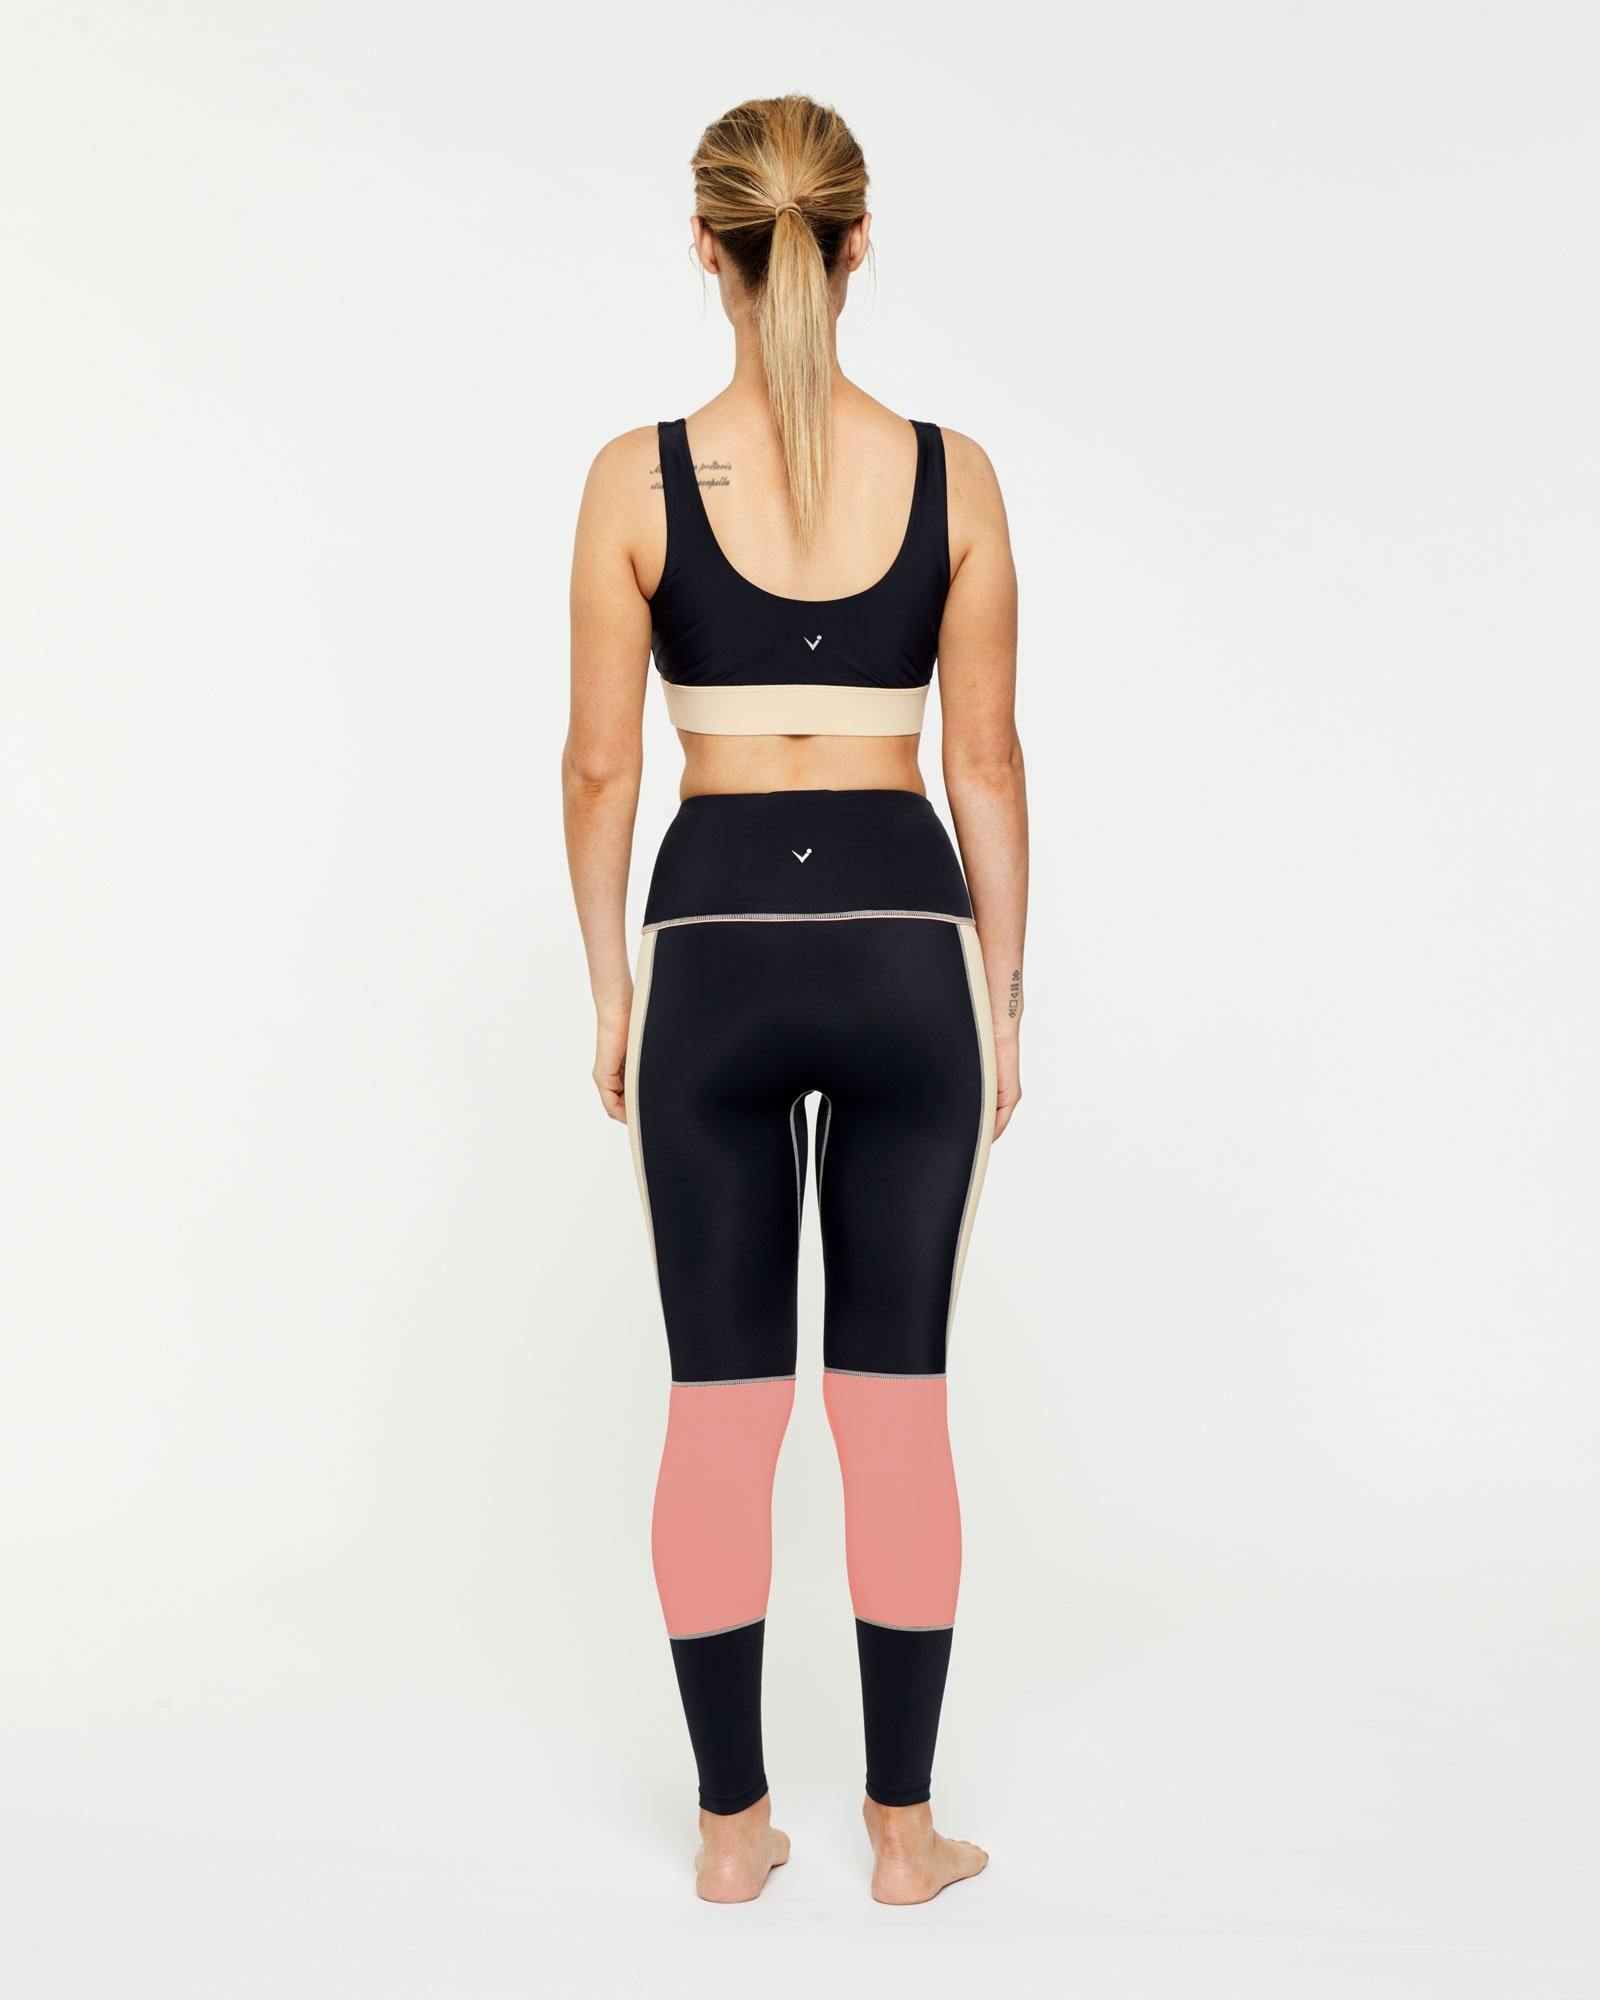 Warrior PECTORALIS bra TOP WITH CONTRAST UNDER BUST BAND, WORN WITH GRACILIS 7/8 LEGGING BACK VIEW